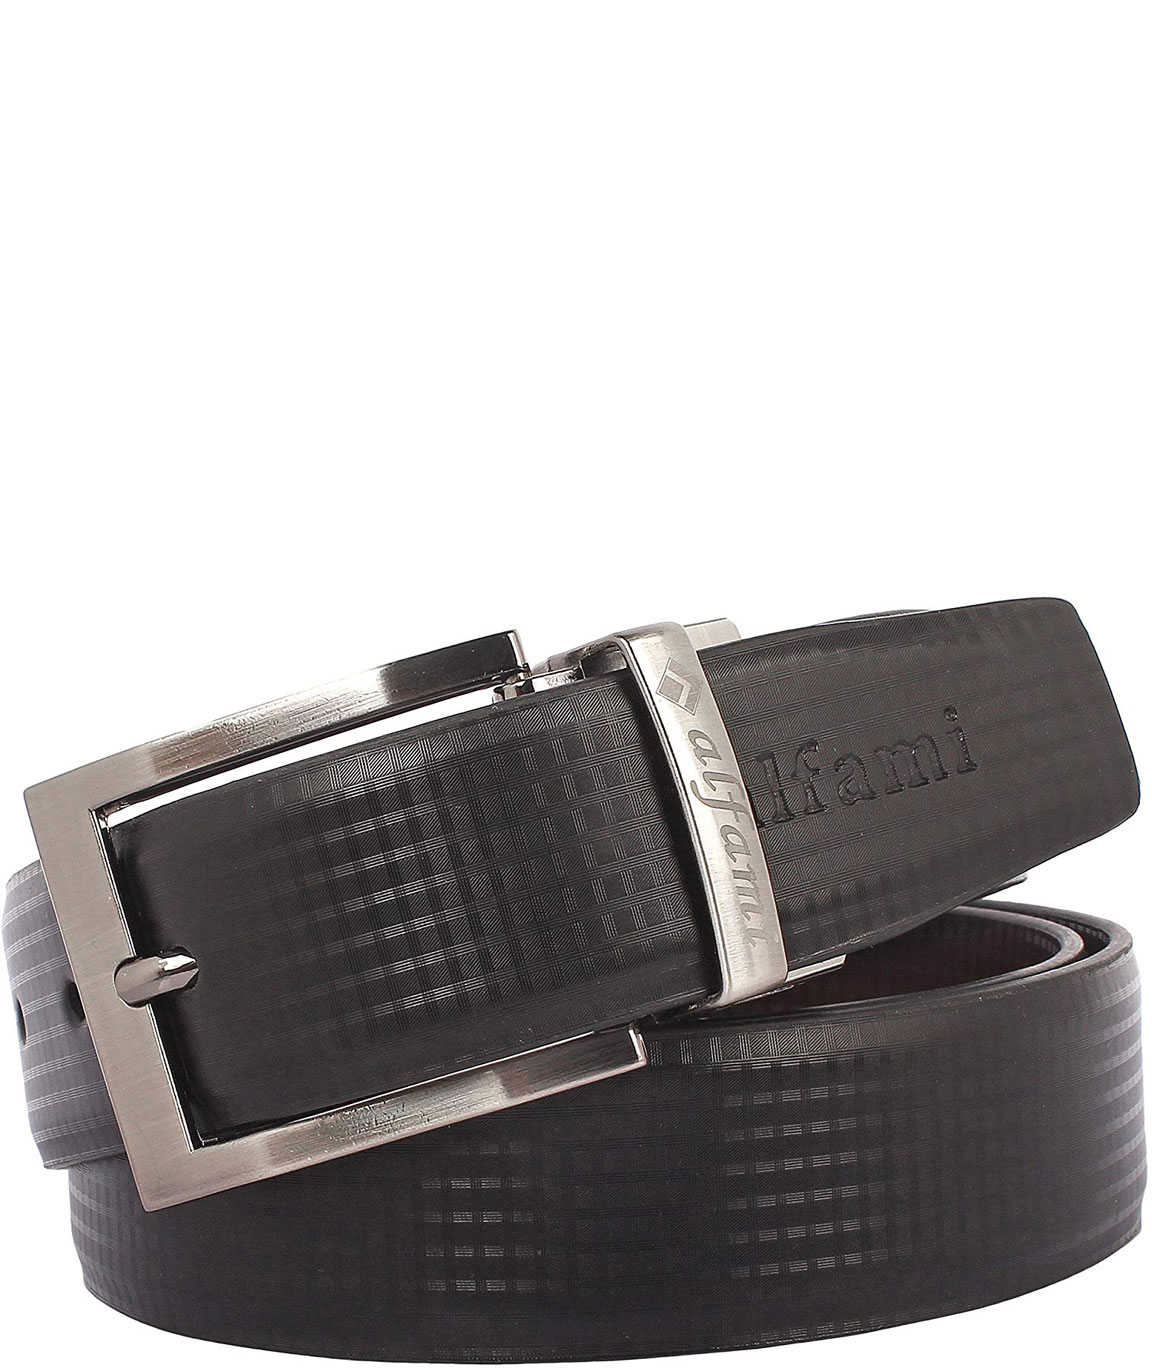 Alfami Gents Executive PU Leather Reversible Belt | Formal / Casual | Black / Brown | Free size upto for 44 waist